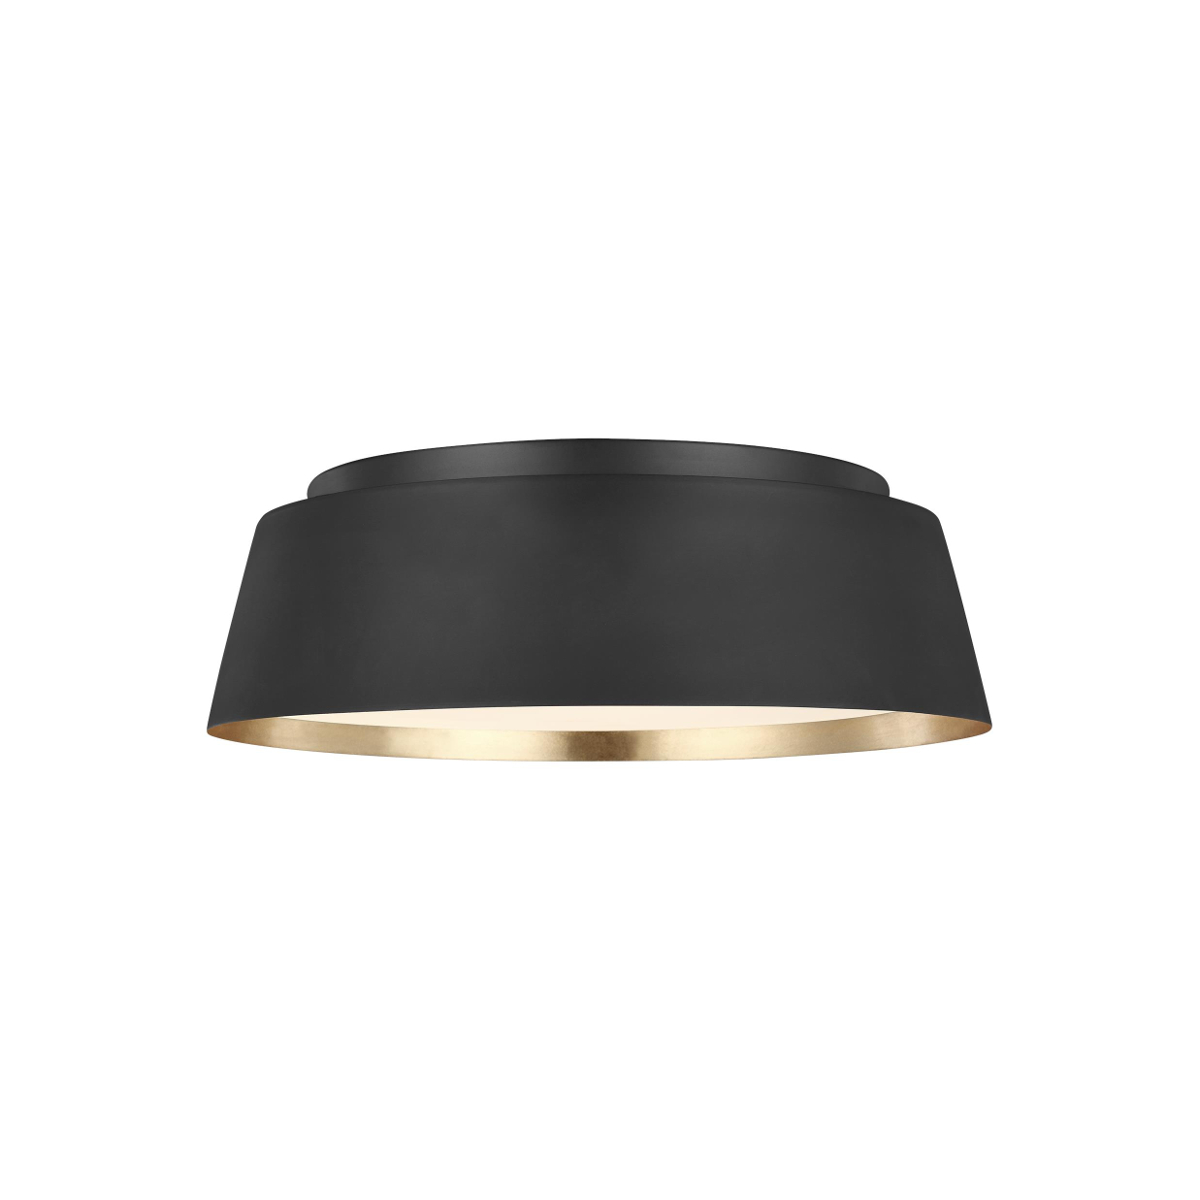 Asher black ceiling light with gold leaf inner